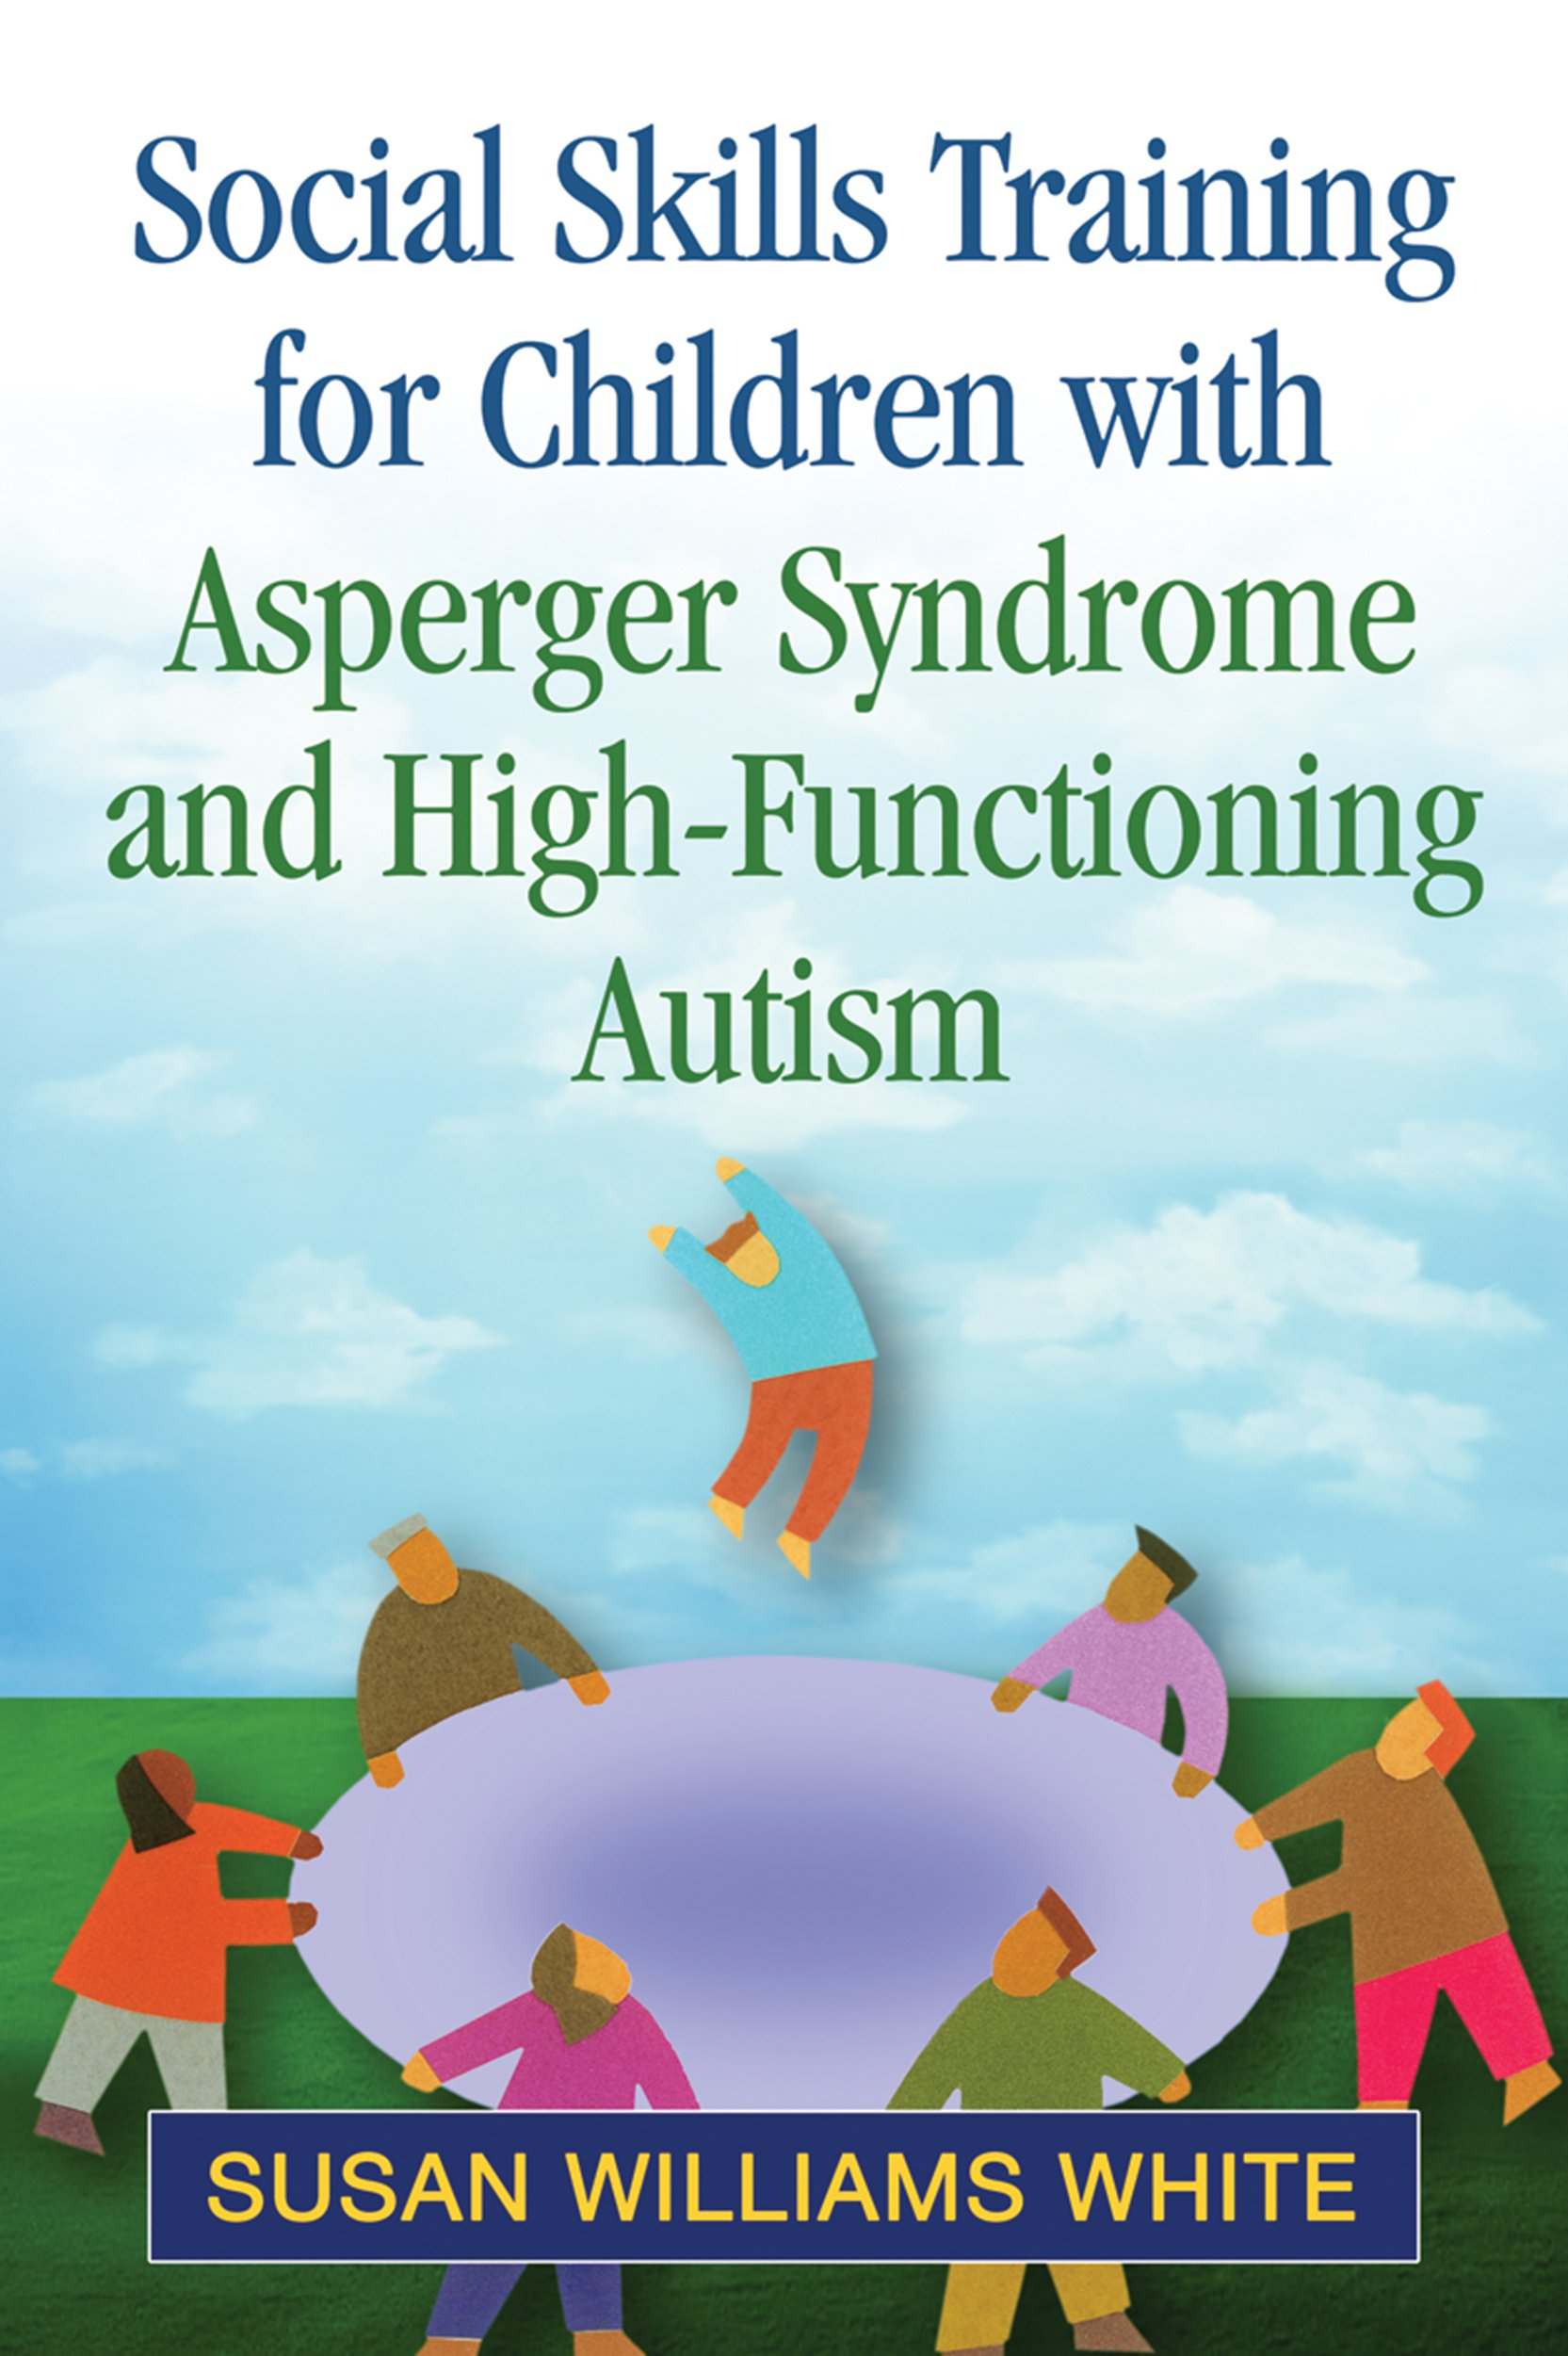 Social Skills Training for Children with Asperger Syndrome and